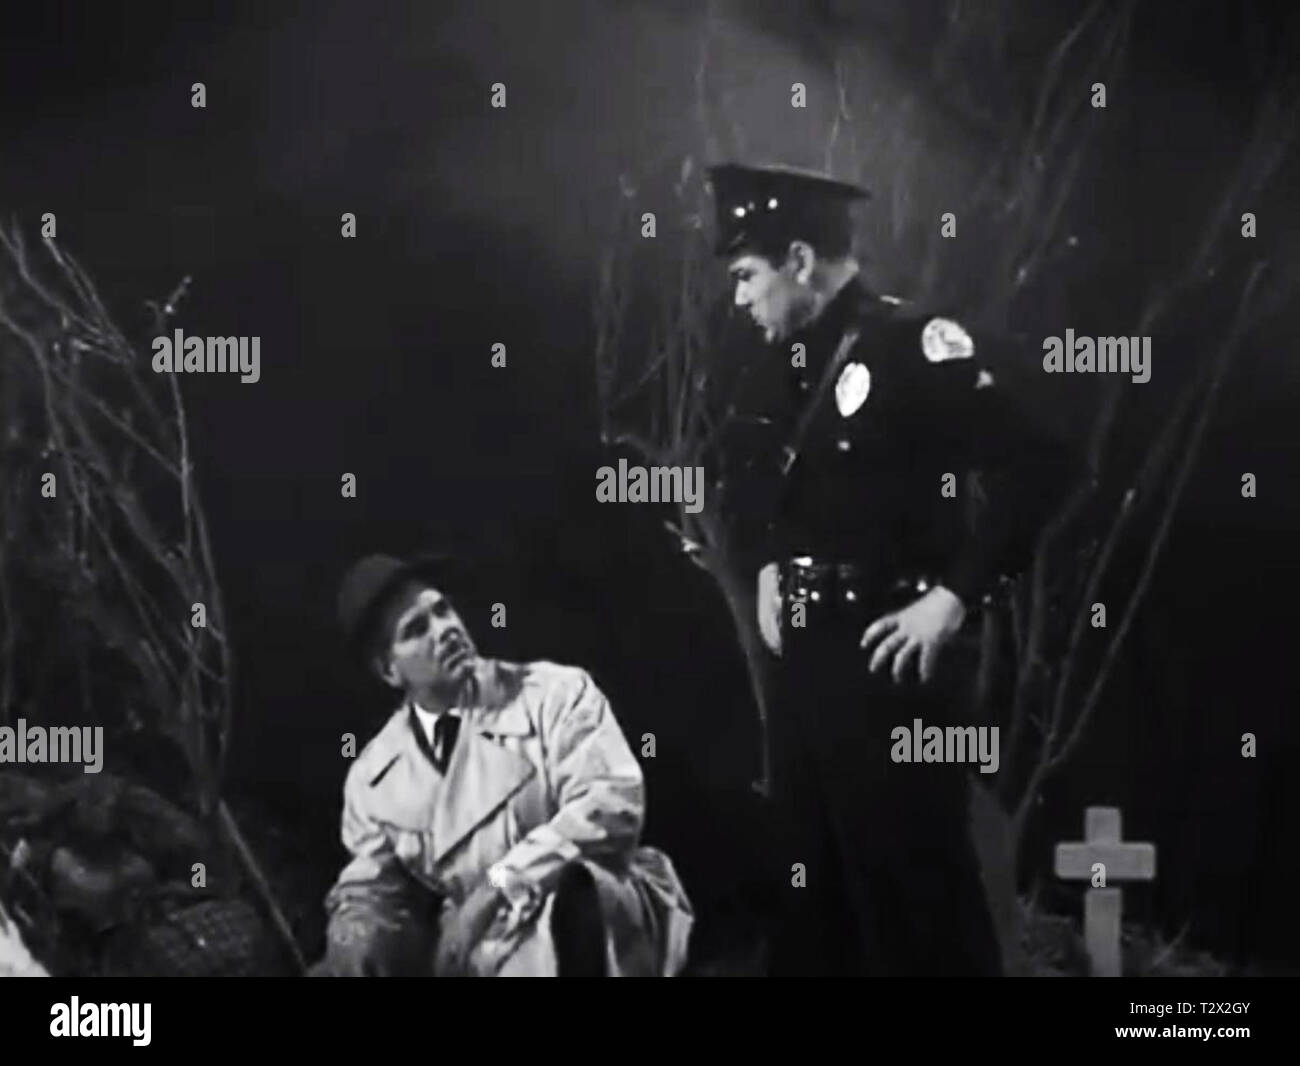 cops searching in an old black and white films (plan 9 from outer space) - Stock Image